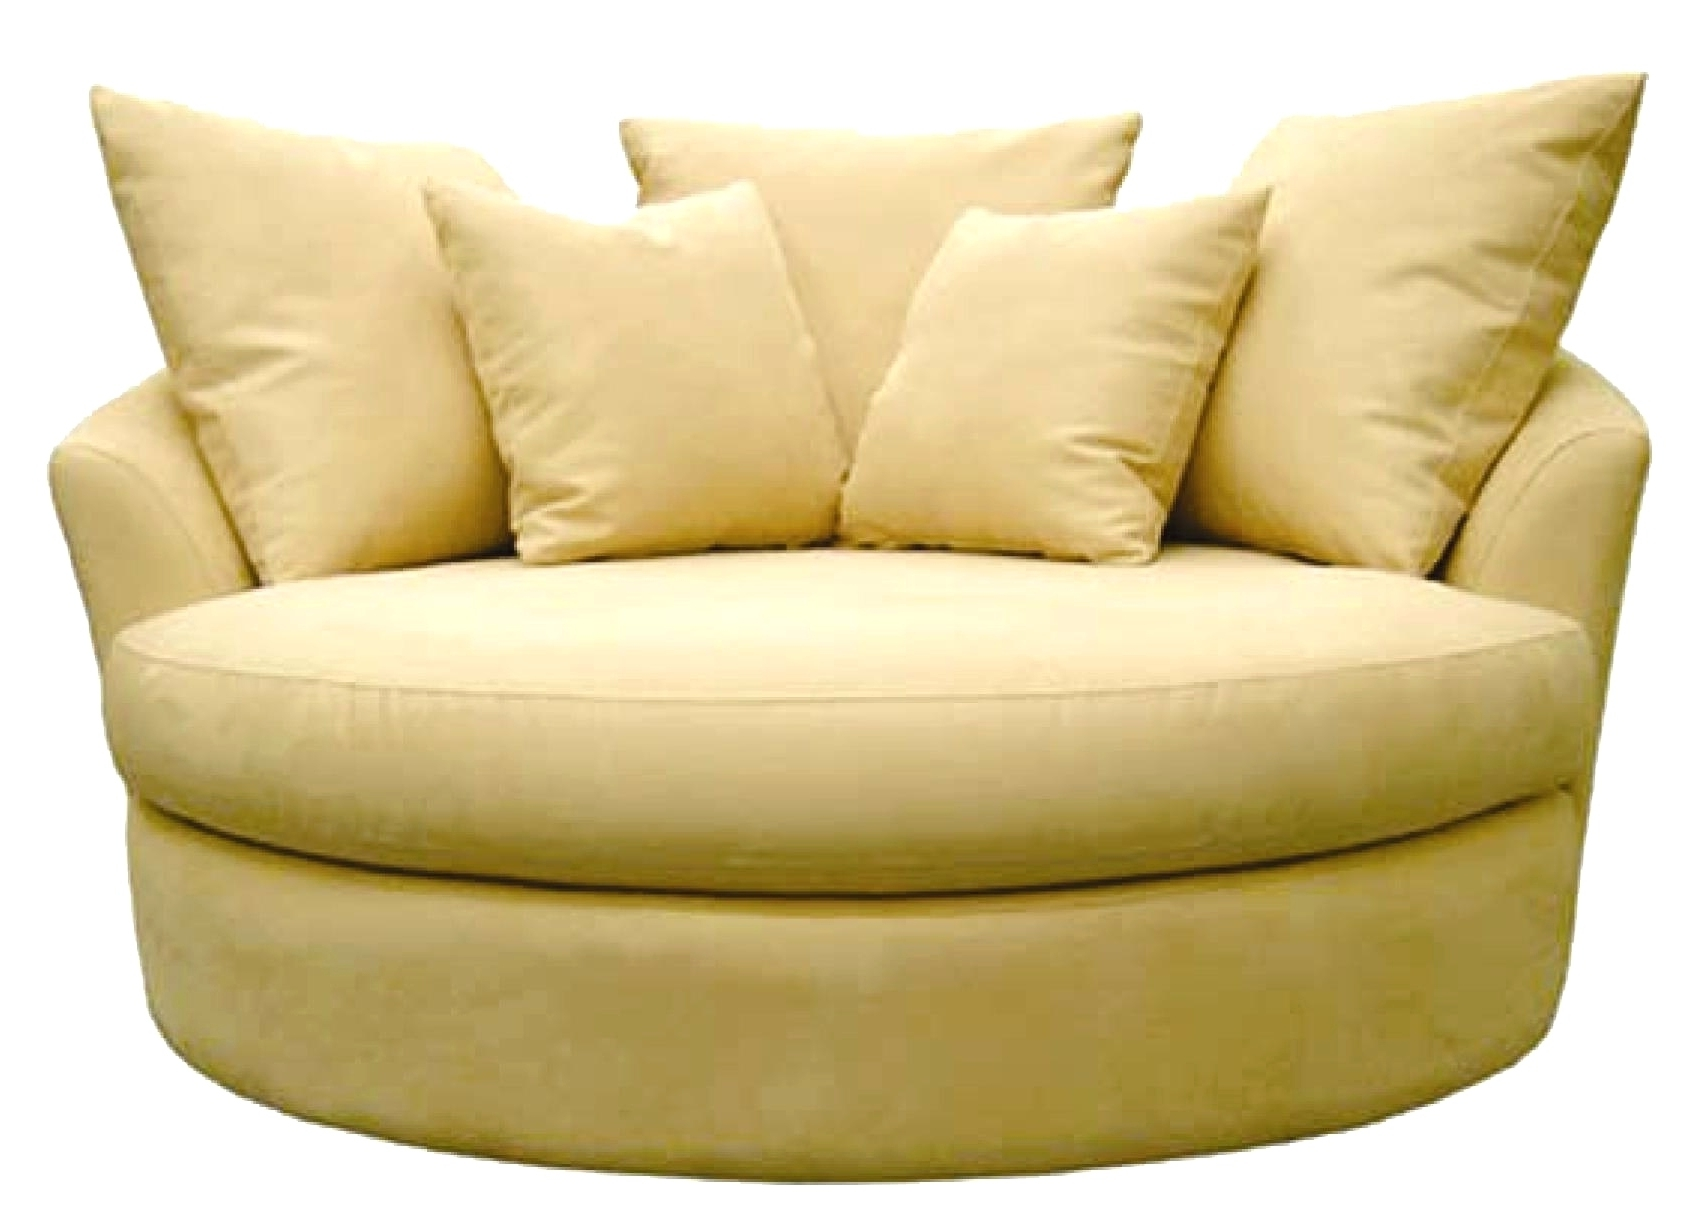 Favorite Snuggle Sofas For Sofas : Curved Sofa Swivel Snuggle Chair Big Round Swivel Chair (View 15 of 15)